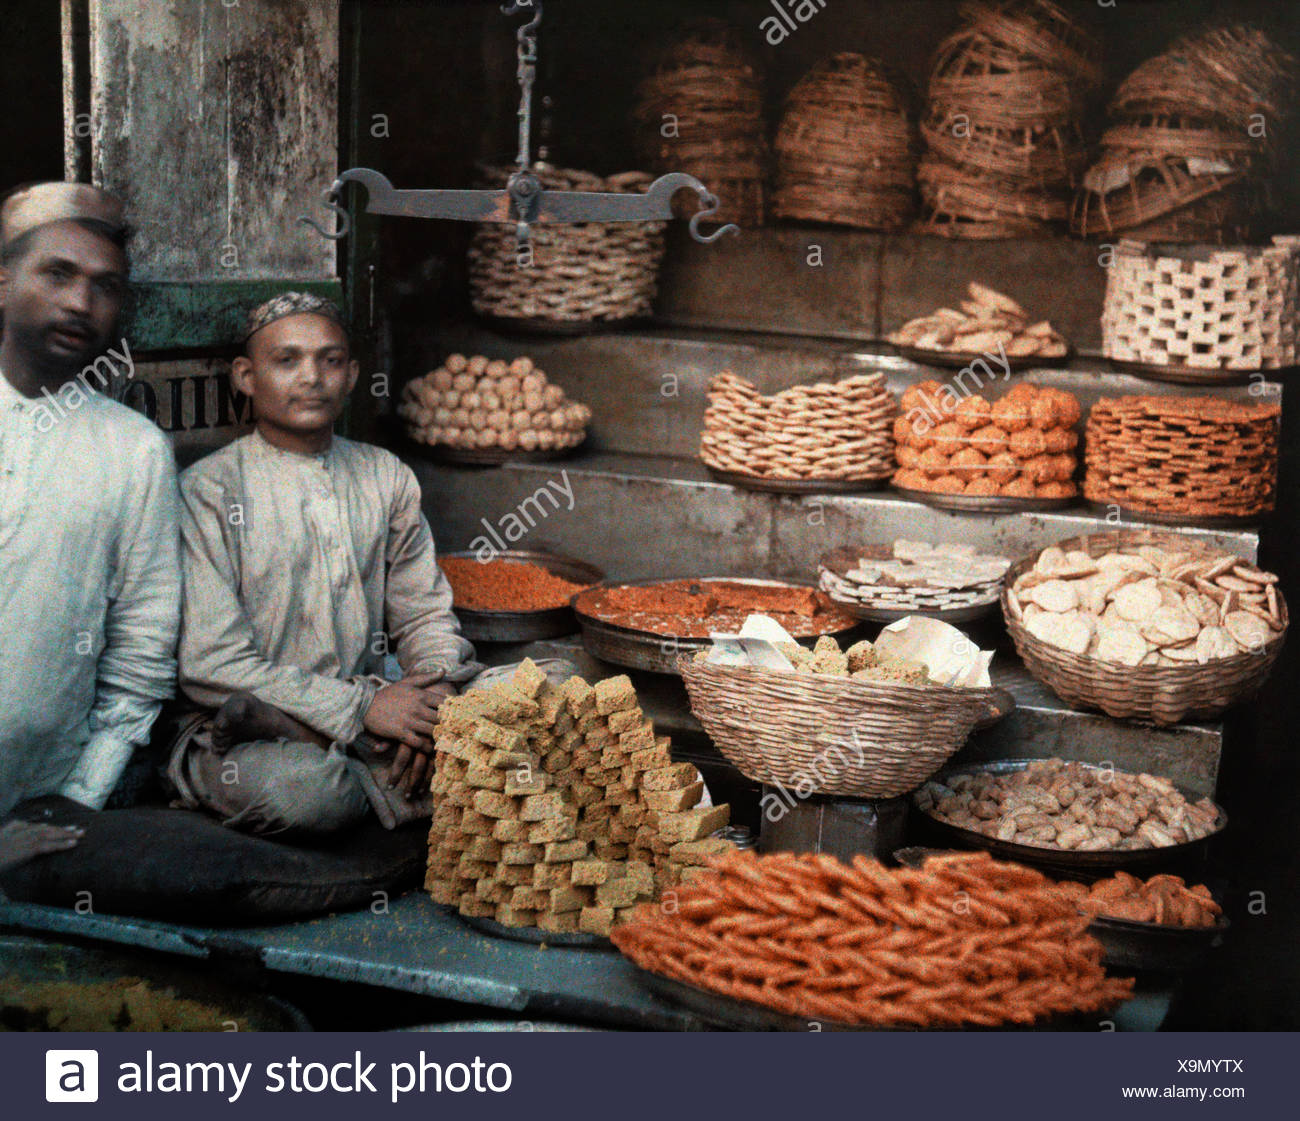 Two merchants sit by their stand of honeycakes in bombay. - Stock Image